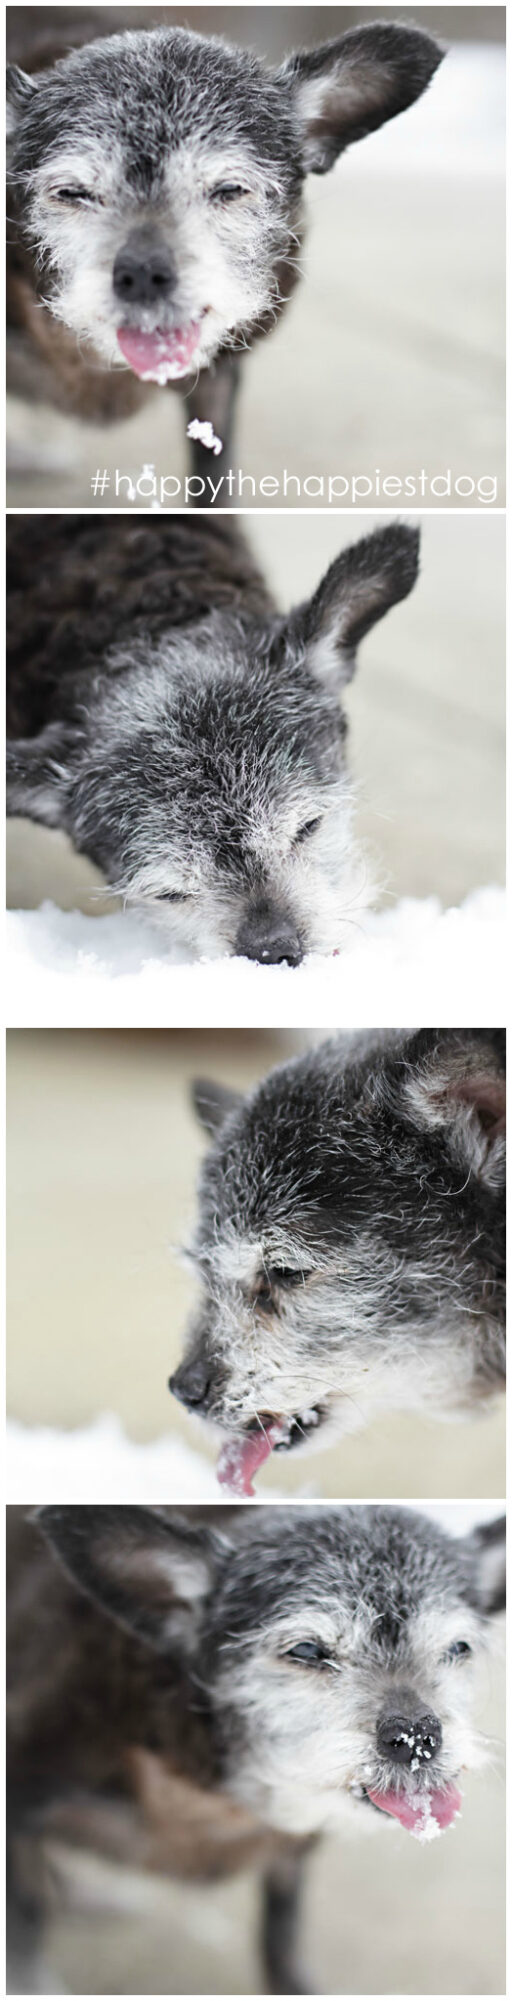 Happy Happily Eating Snow - Happy the Happiest Dog - Senior Rescue - Dog Adoption